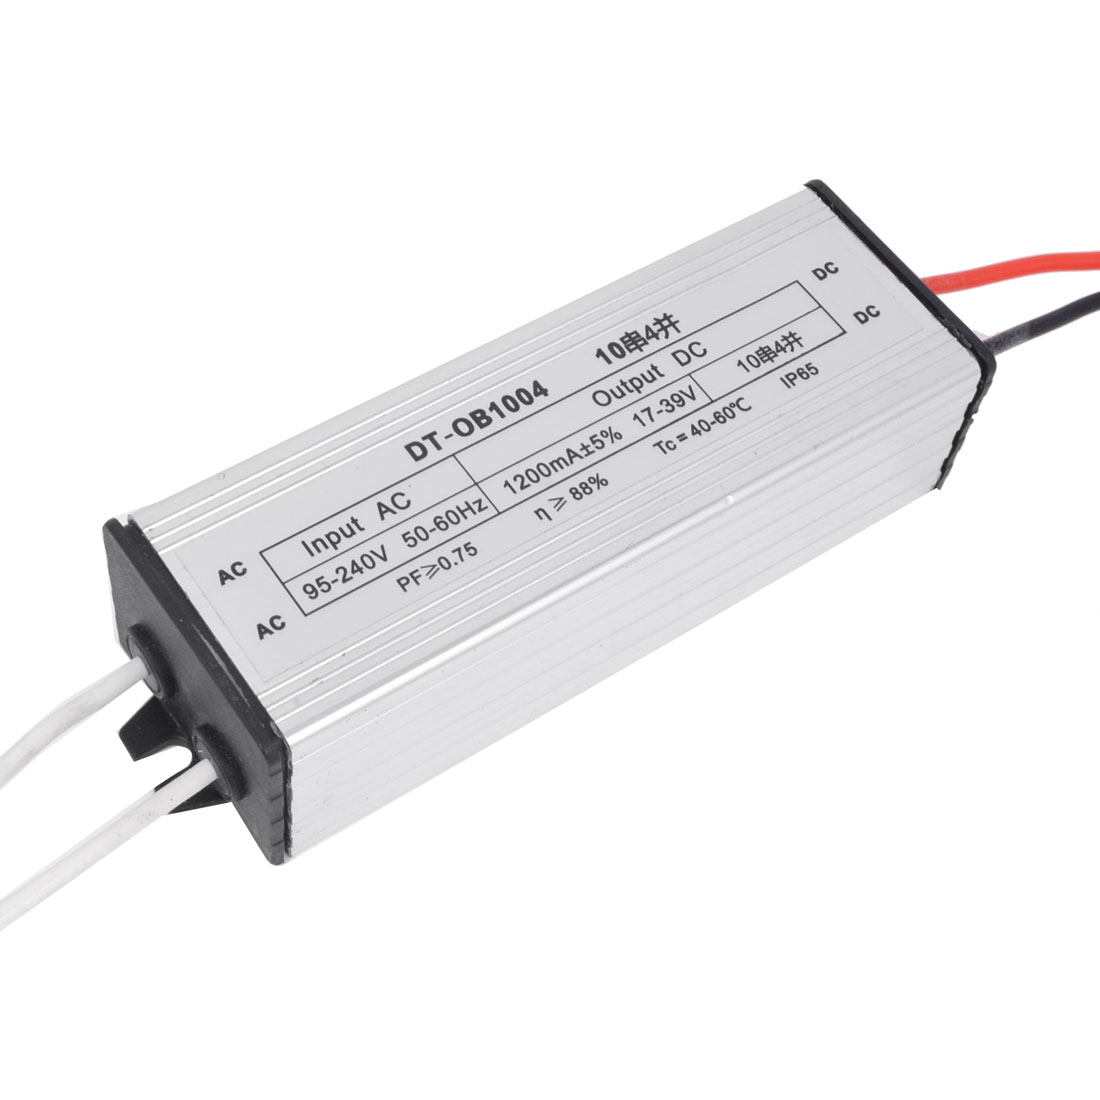 DC 17-39V 1200mA 40W Aluminum Waterproof LED Driver Transformer Power Supply